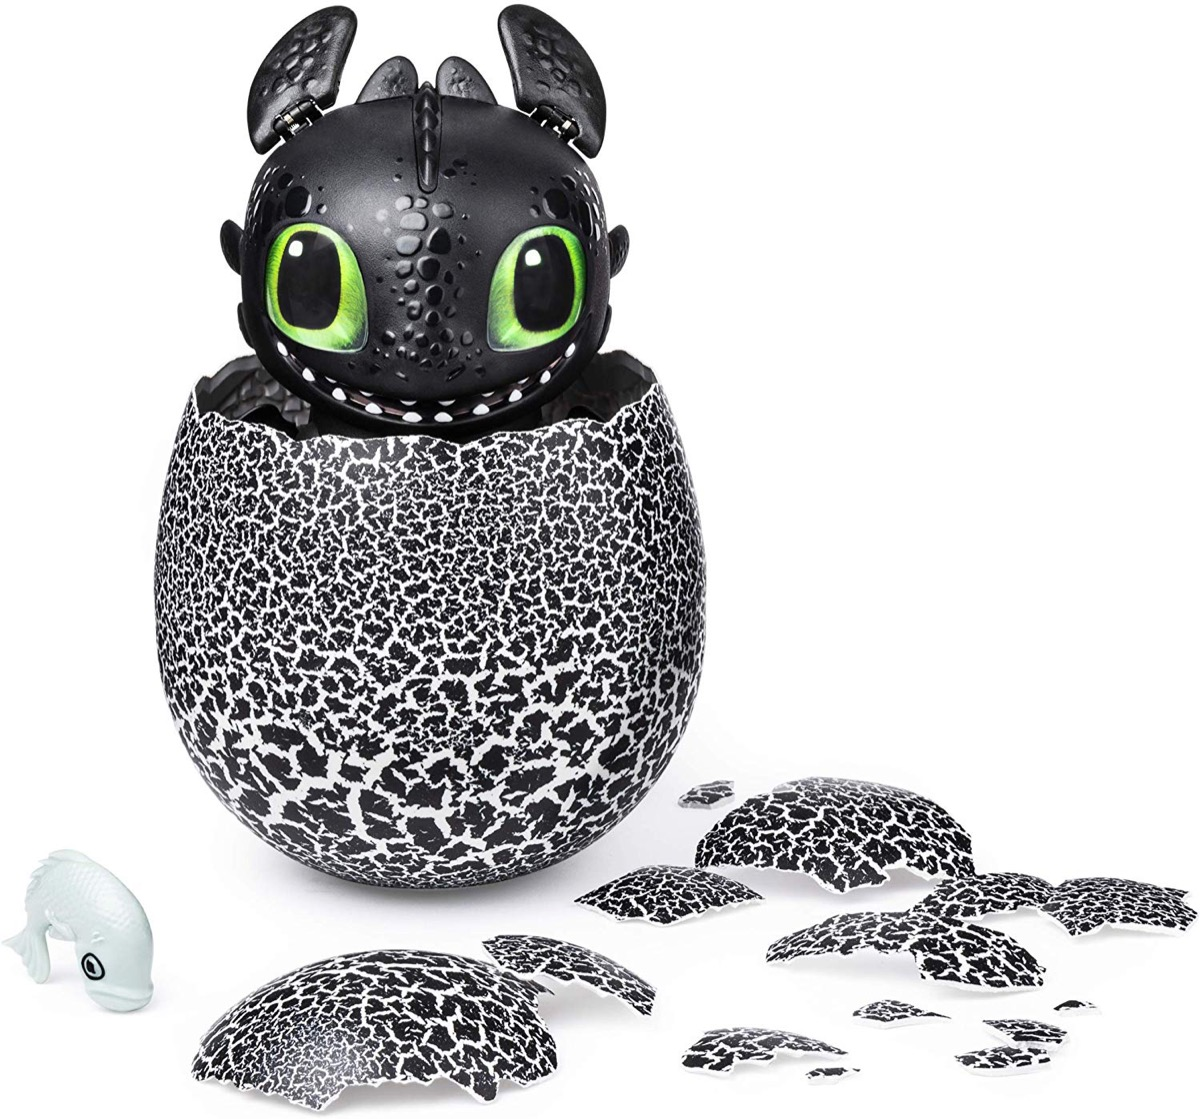 hatched toothless the dragon